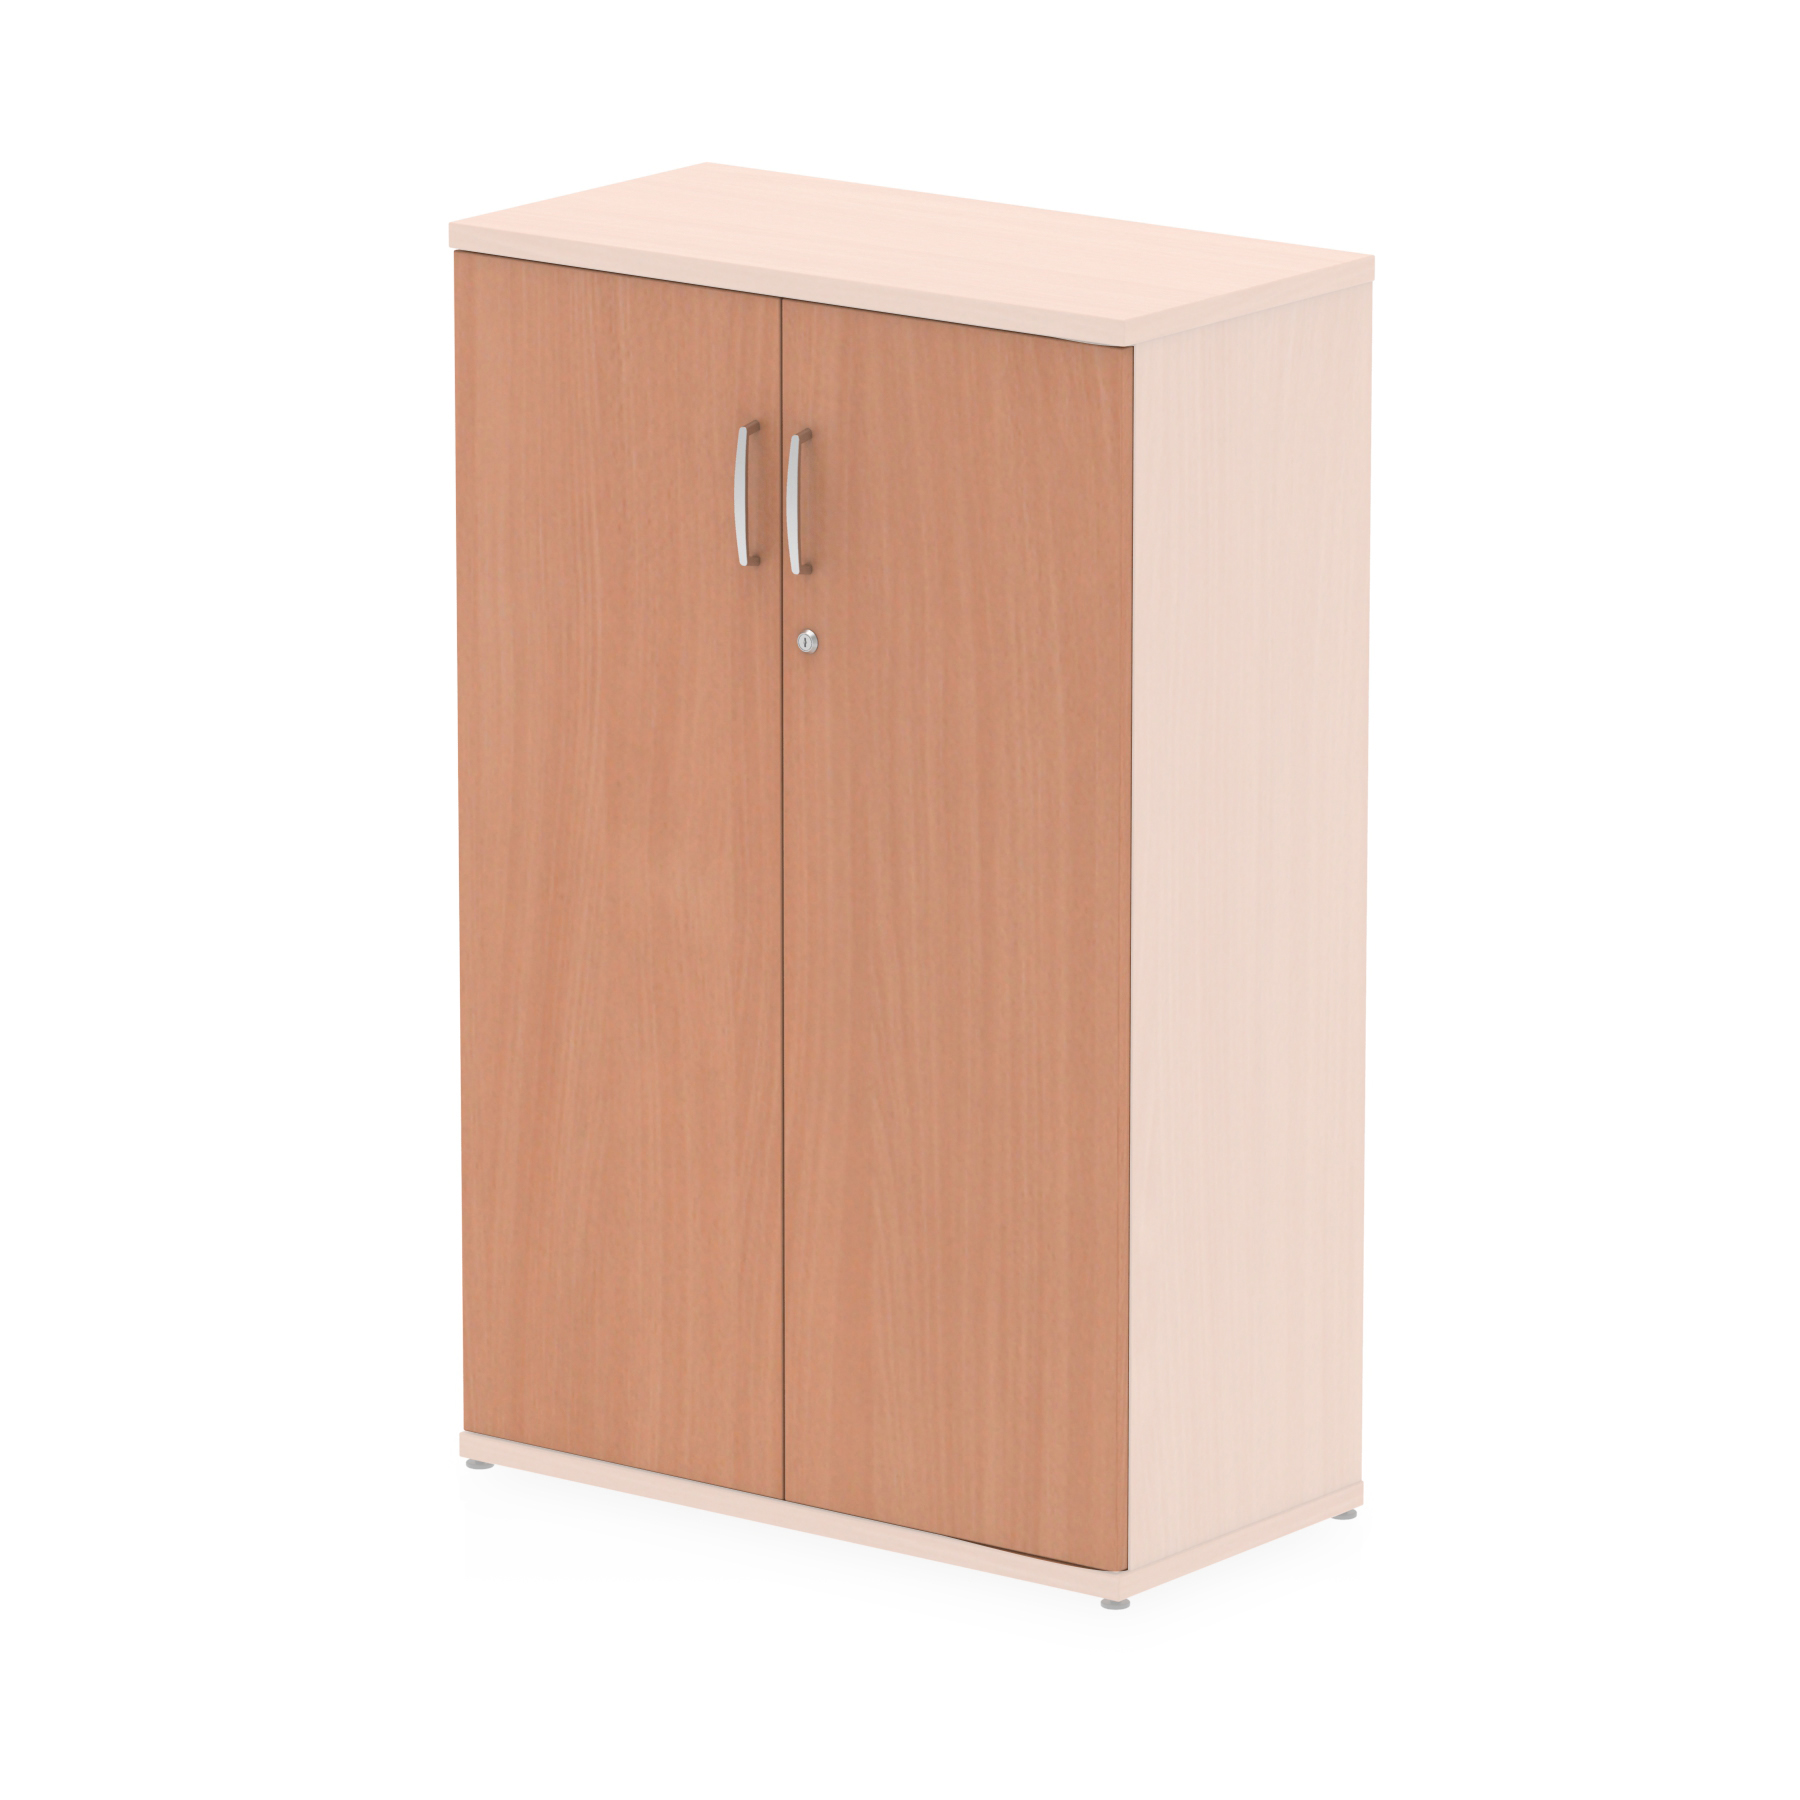 Trexus Door Pack For 1200mm High Cupboard Beech Ref I000054